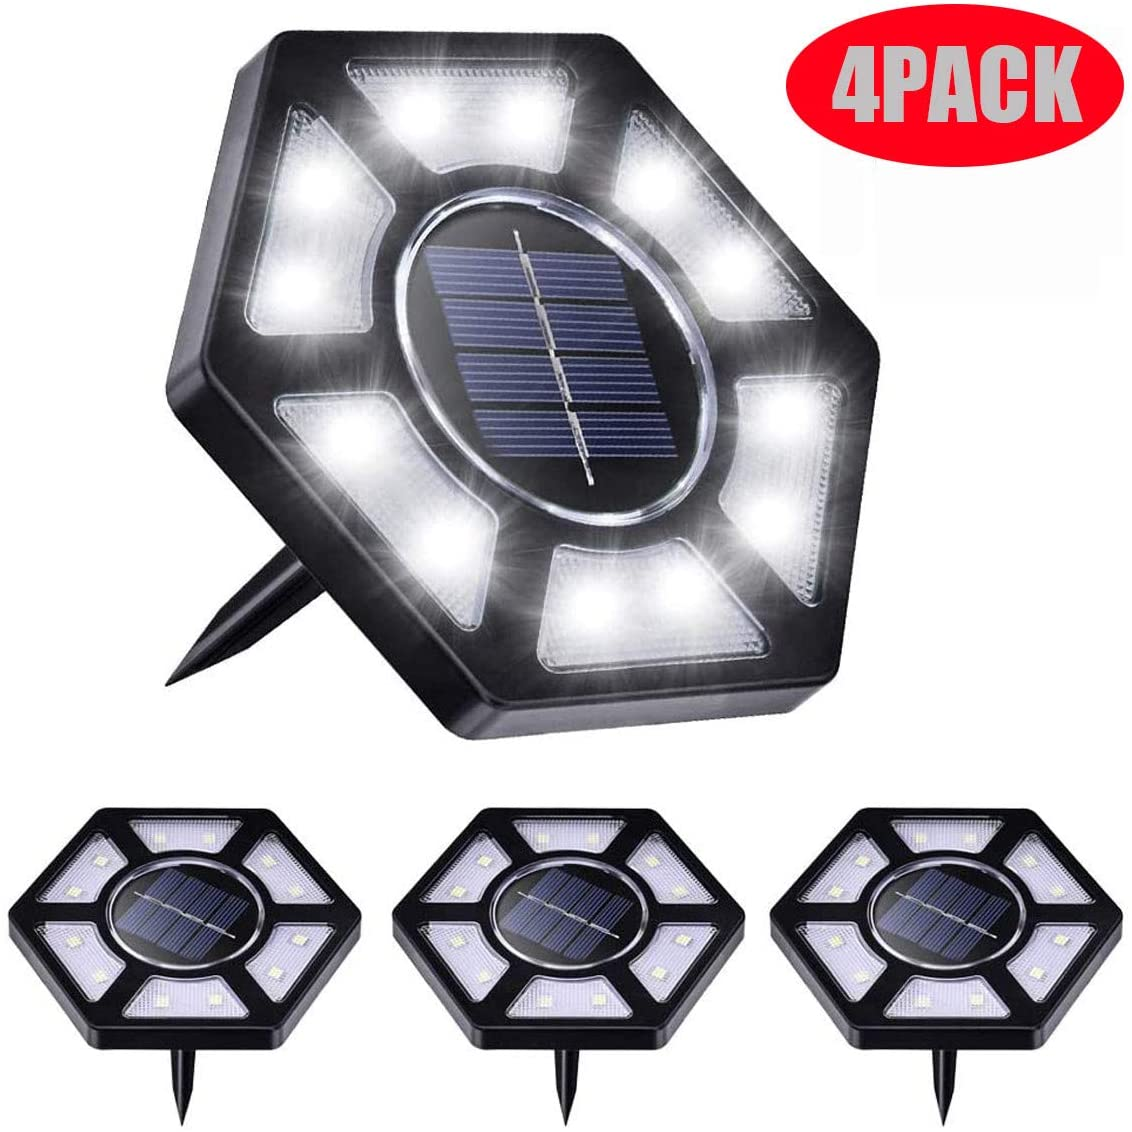 CWWHY 4 Pack Solar Ground Lights, 12 LED Bulbs Solar Powered Disk Lights Solar Garden Lights Outdoor Waterproof Bright In-Ground Lights for Patio Lawn